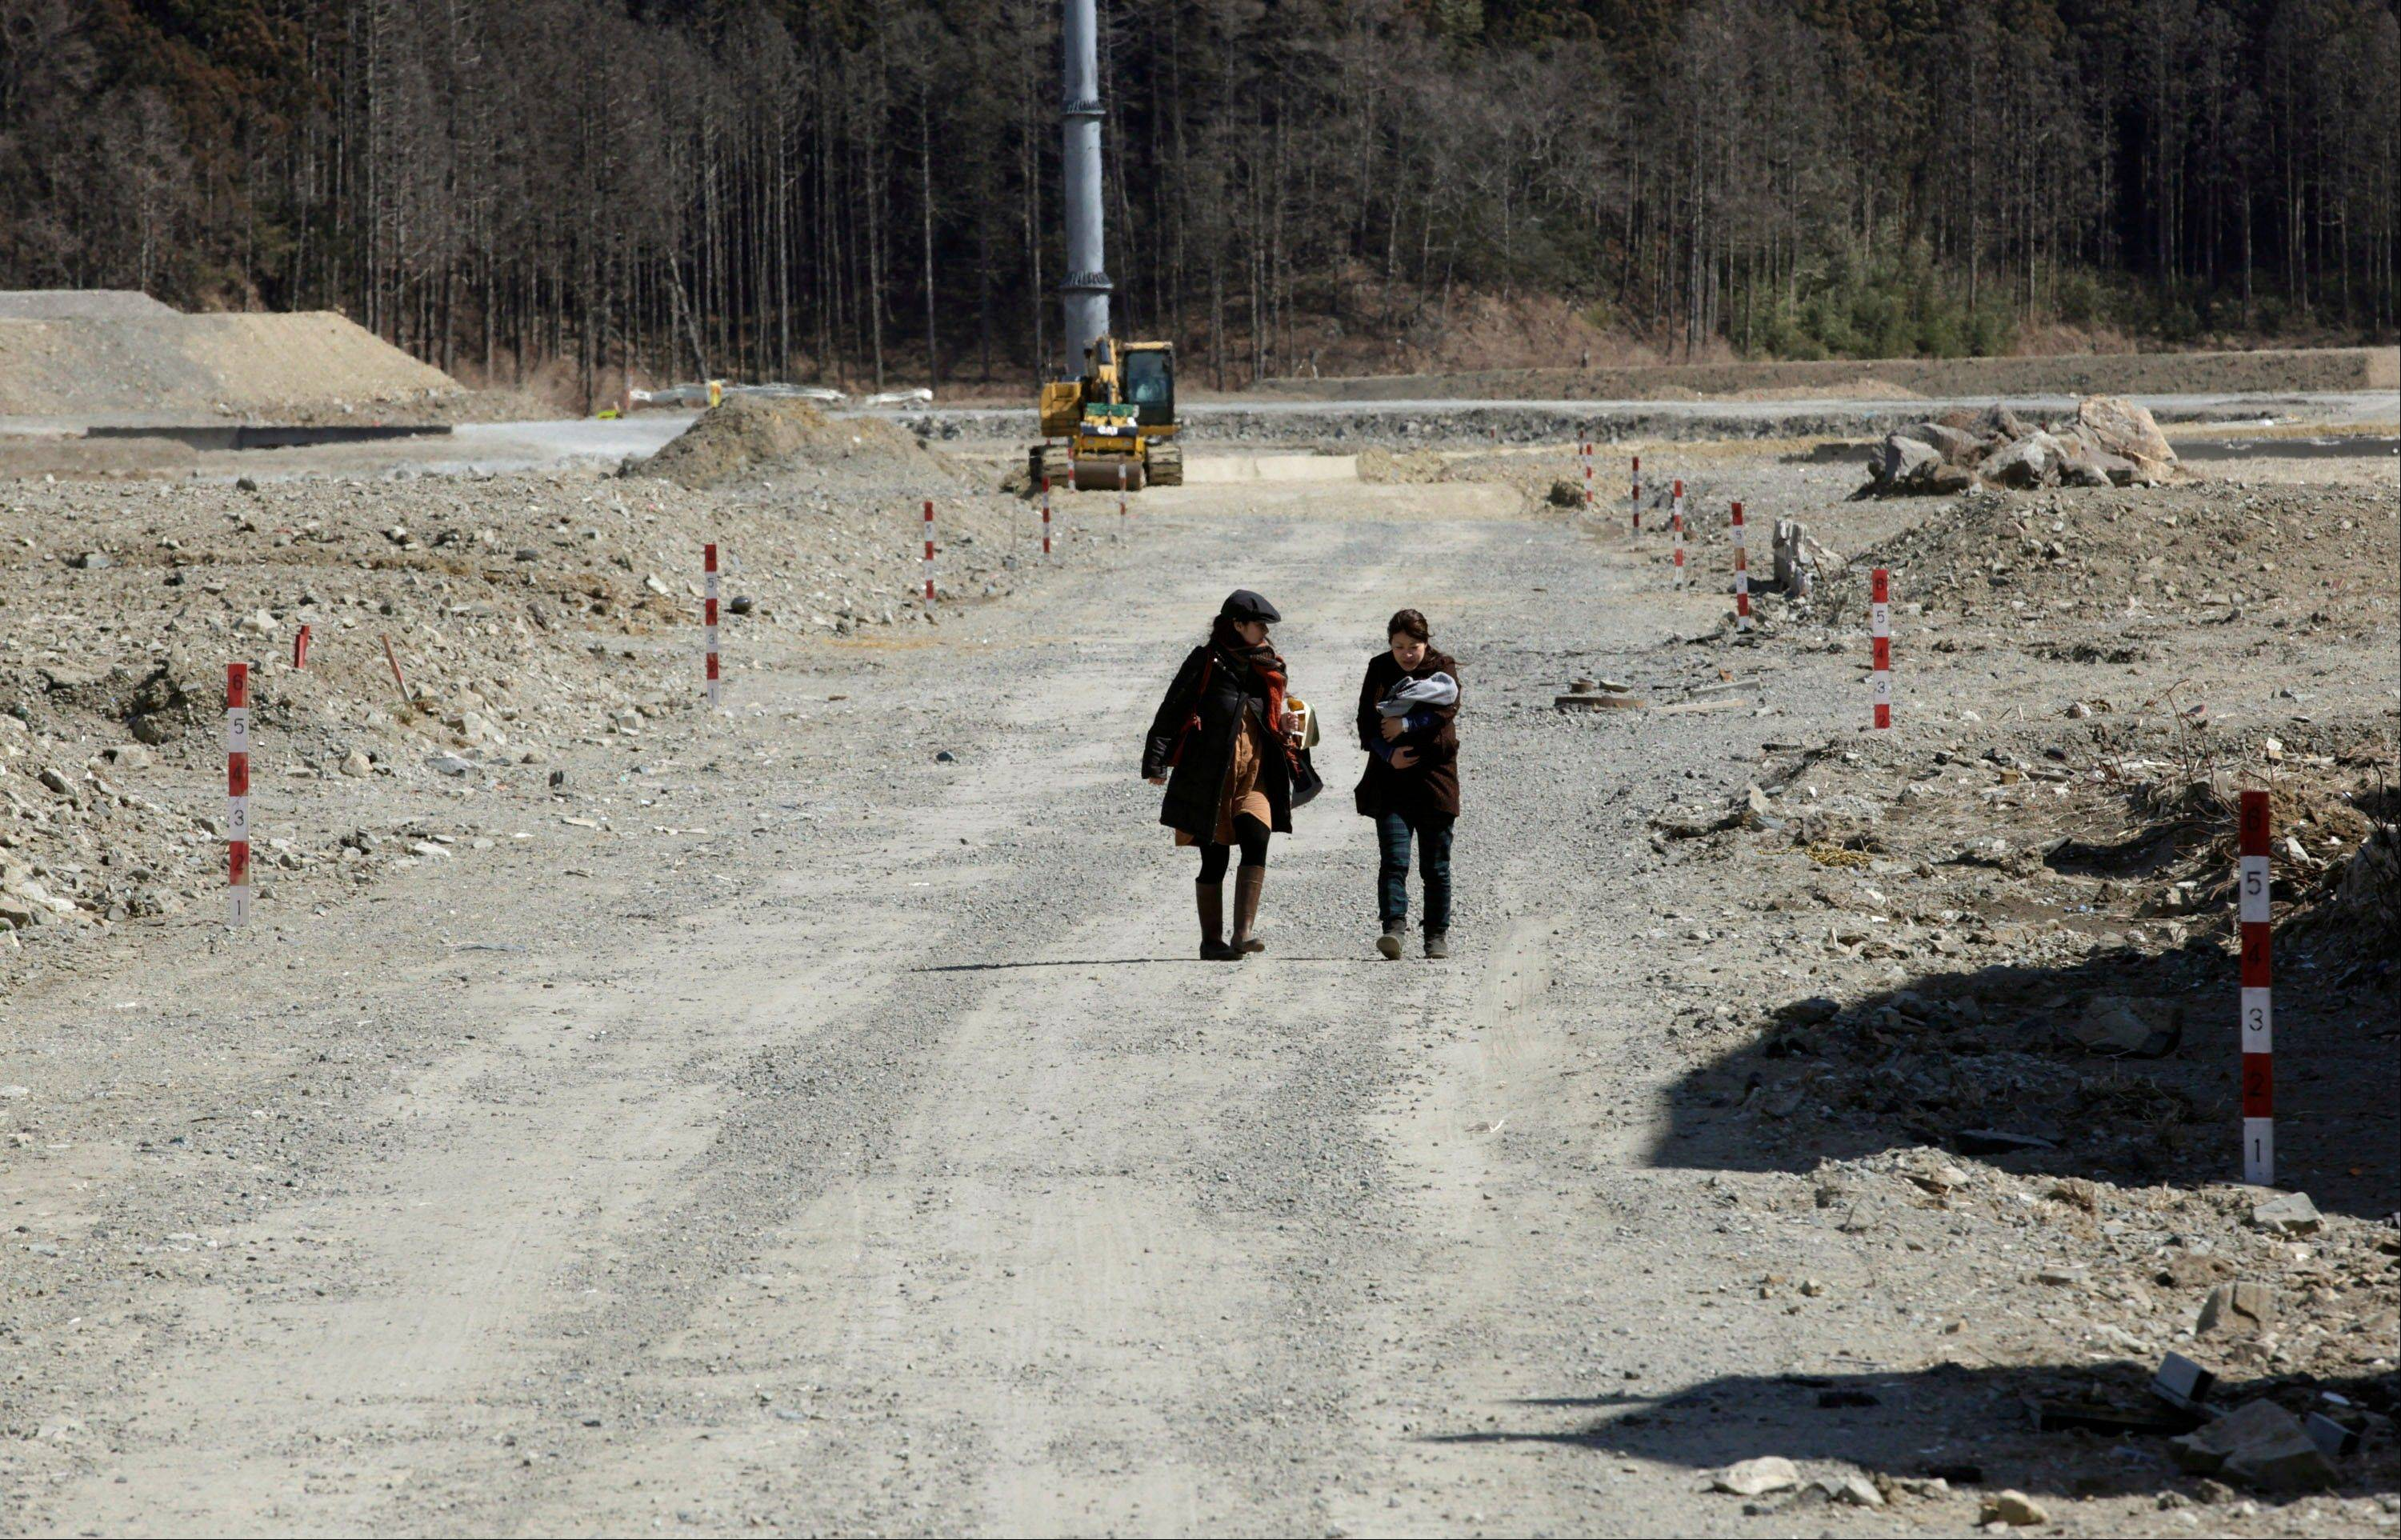 Women approach Okawa Elementary School where 74 of the 108 students went missing after the March 11 tsunami in Ishinomaki, Miyagi prefecture, Japan, Monday, March 11, 2013. The two-year anniversary Monday of Japan's devastating earthquake, tsunami and nuclear catastrophe is serving to spotlight the stakes of the country's struggles to clean up radiation, rebuild lost communities and determine new energy and economic strategies.